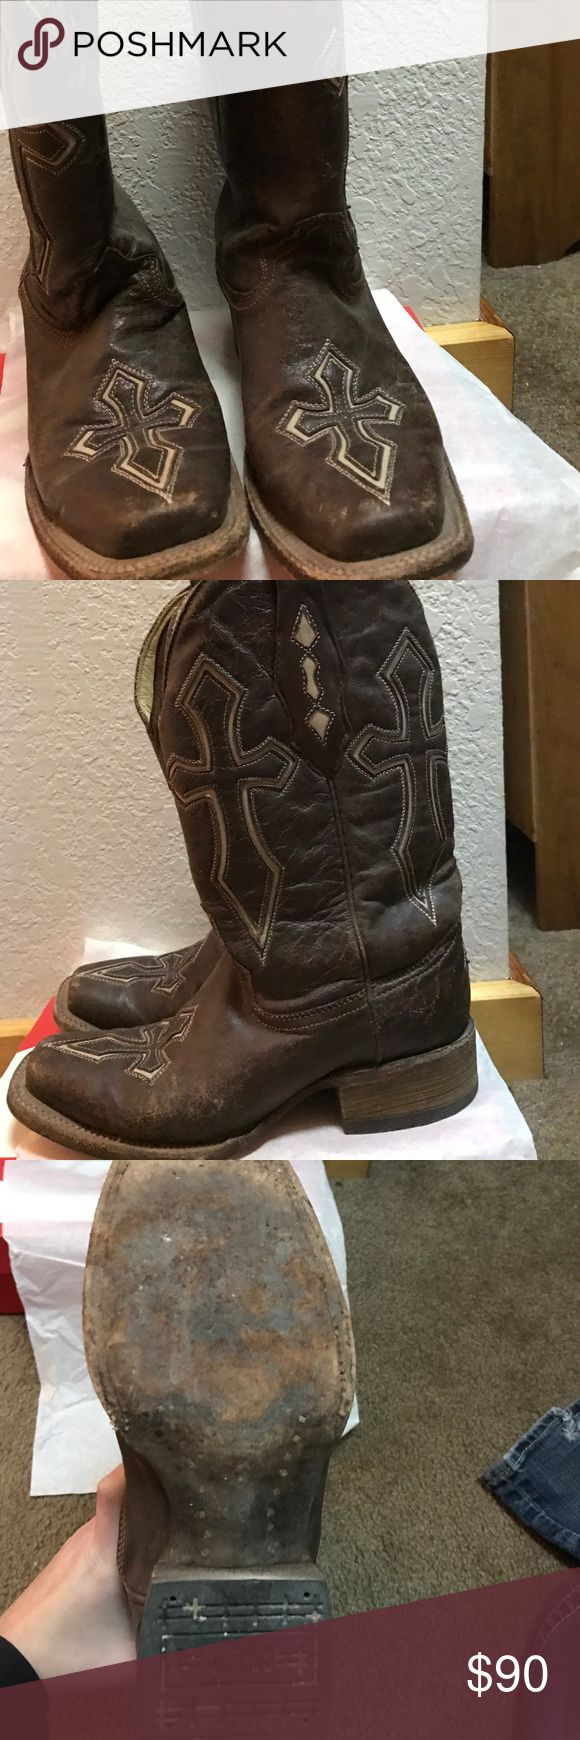 Corral vintage boots Still in great shape! Just too small for me🙁 Rock Revival Shoes Heeled Boots